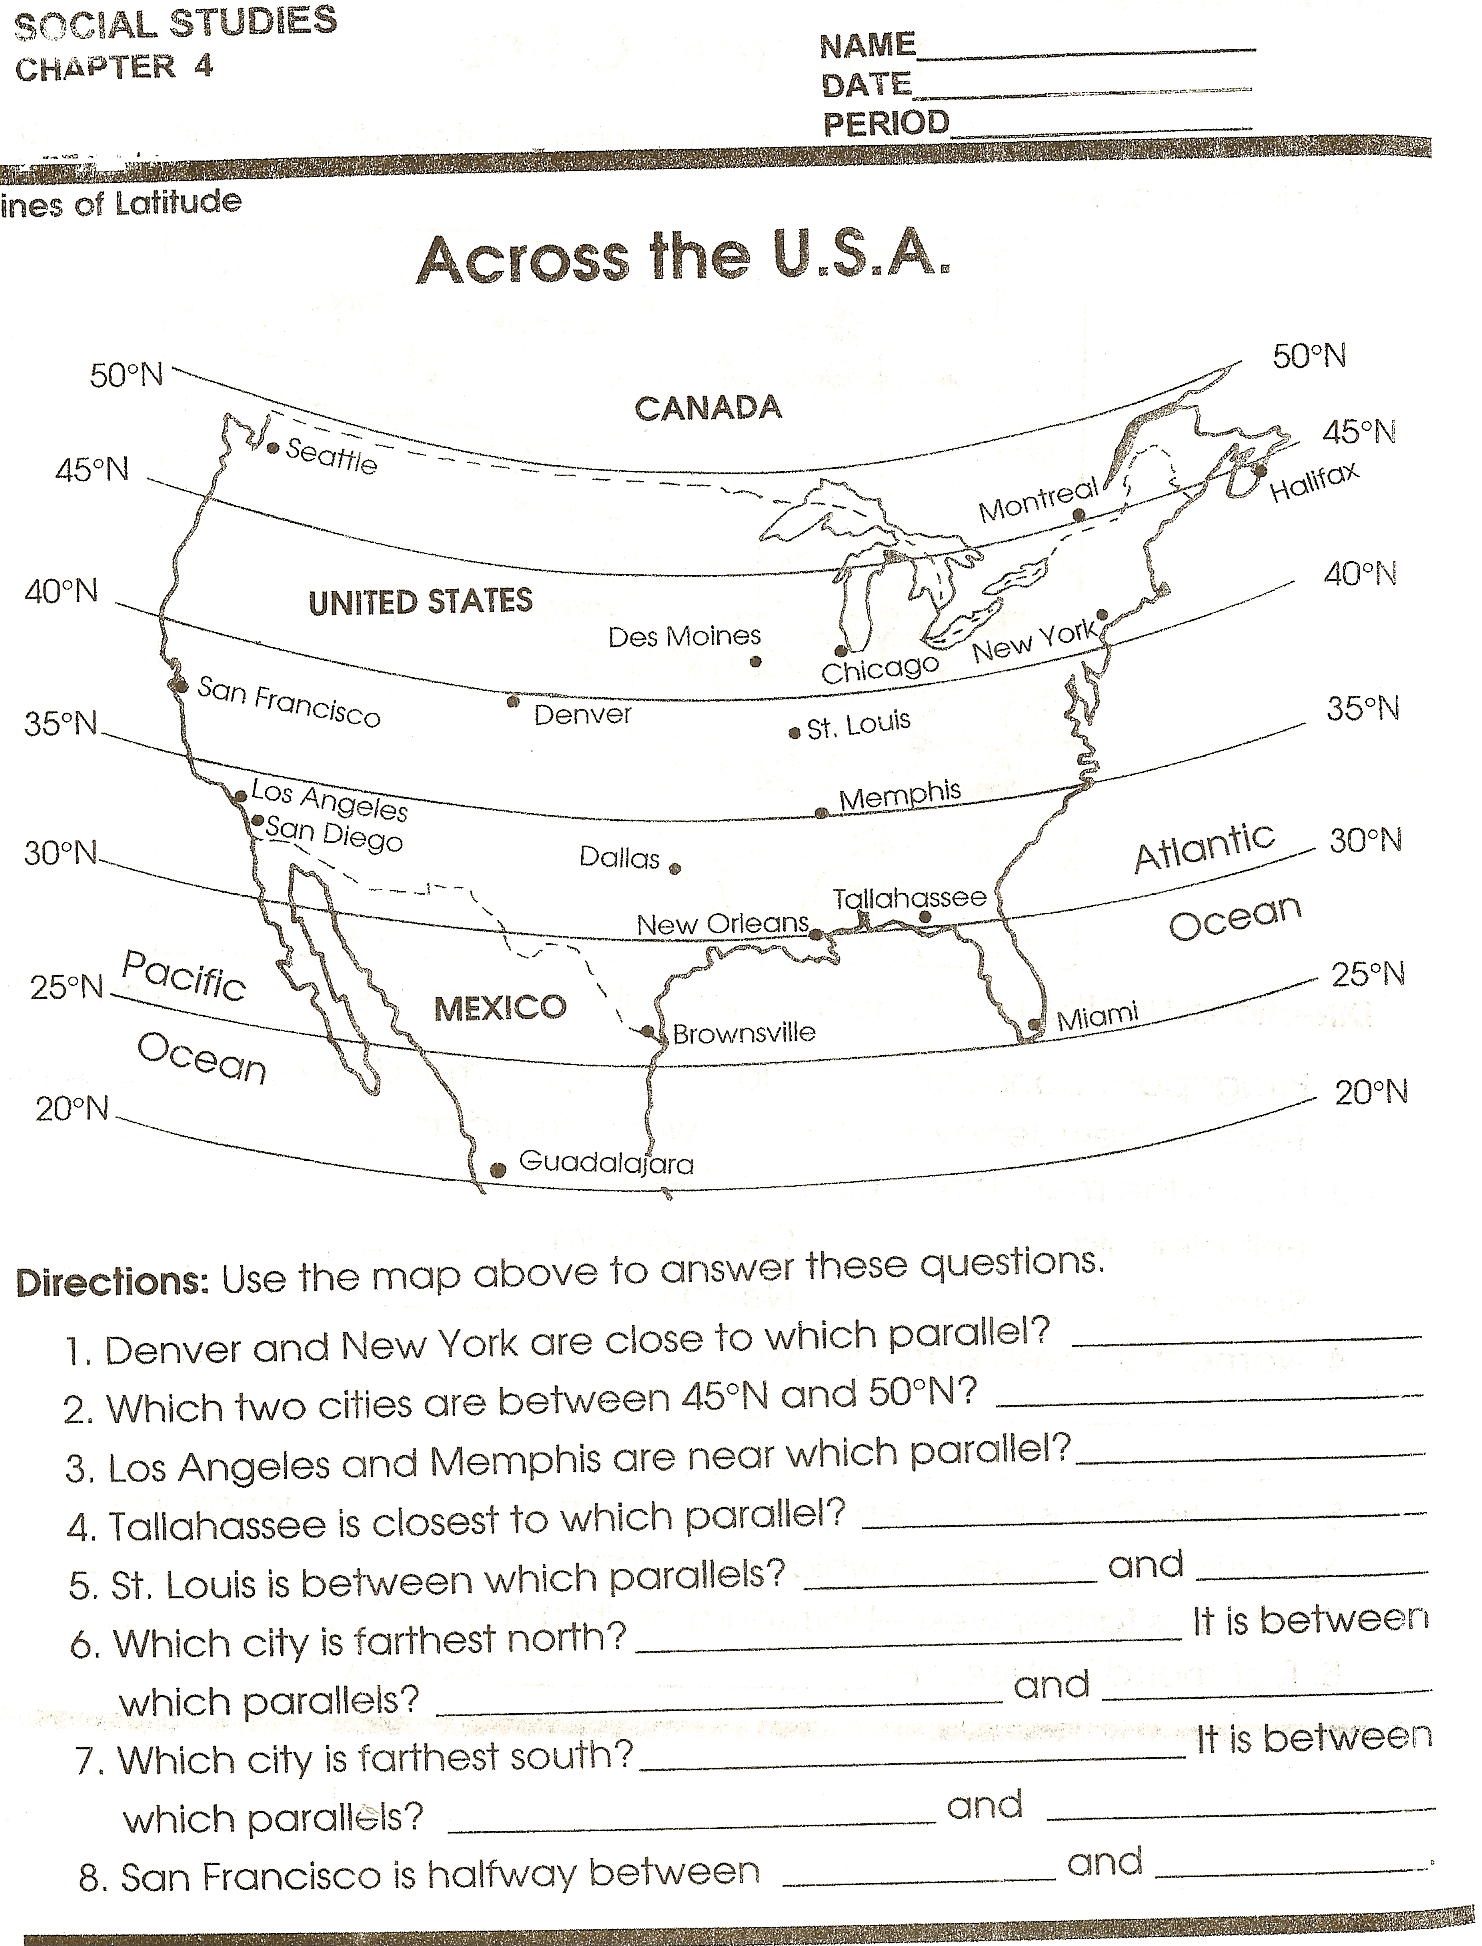 Free Printable Map Skills Worksheets For 4th Grade